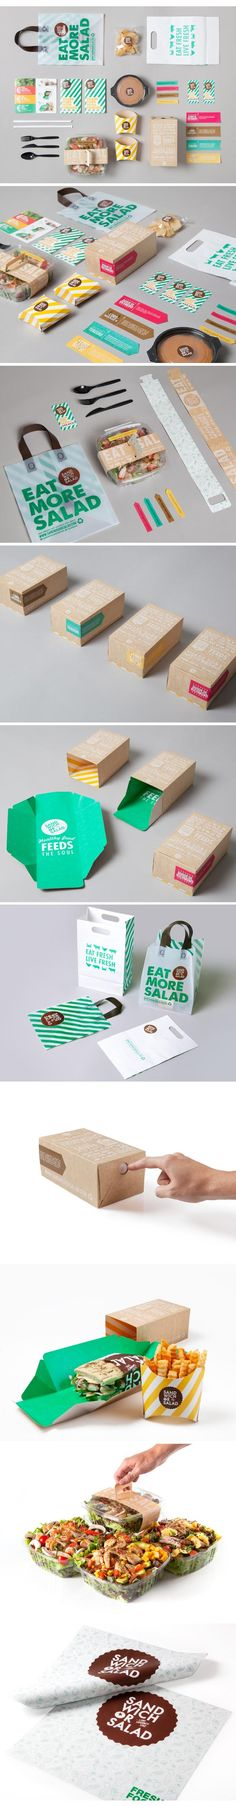 Sandwich Or Salad Brand Identity Packaging Print Blanc Sur Craft Paper Surimpression En Couleur Brand Identity Design, Graphic Design Branding, Corporate Design, Corporate Identity, Logo Design, Print Design, Food Branding, Food Packaging Design, Restaurant Branding